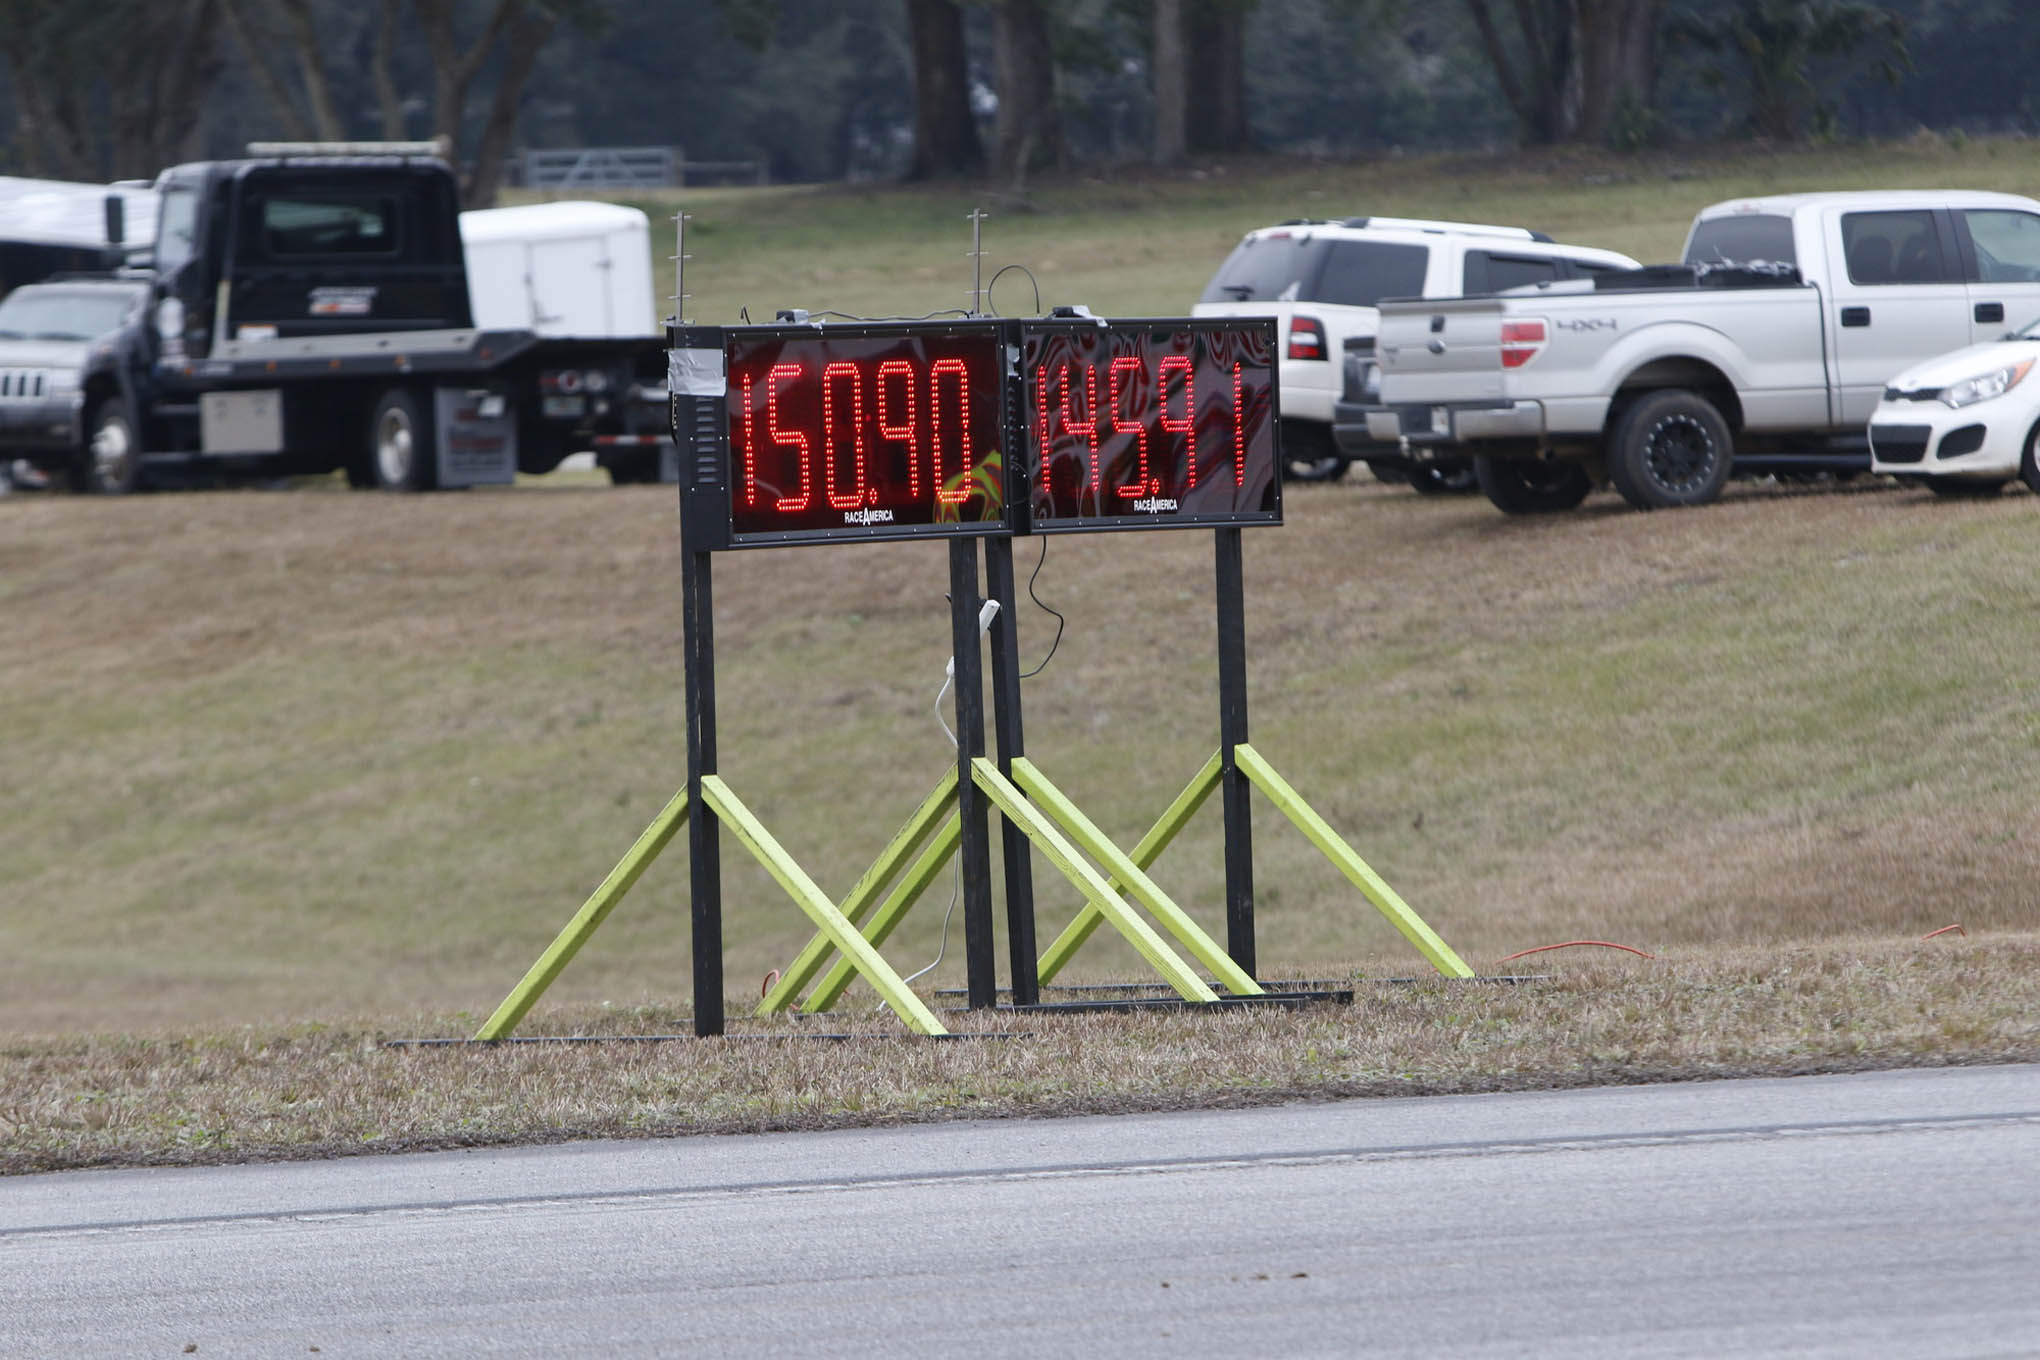 Most of the Dodge Hellcats ran through the timing lights at just under 150 mph